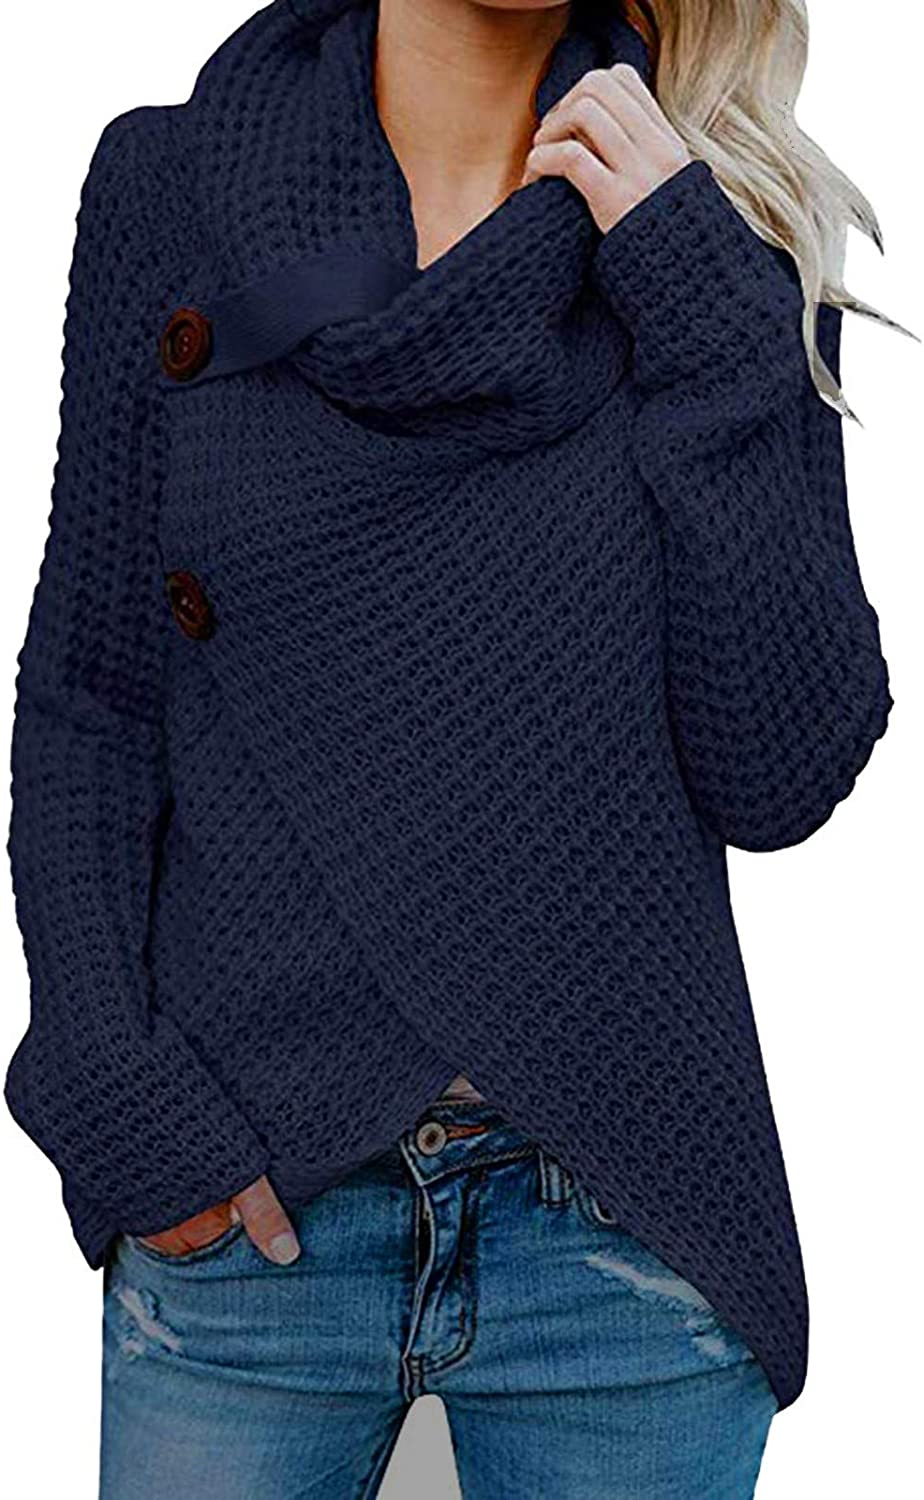 Women's Turtle Cowl Neck Pullover Tops Solid Color Cross Hem Button Knitted Sweater Casual Wrap Tunics